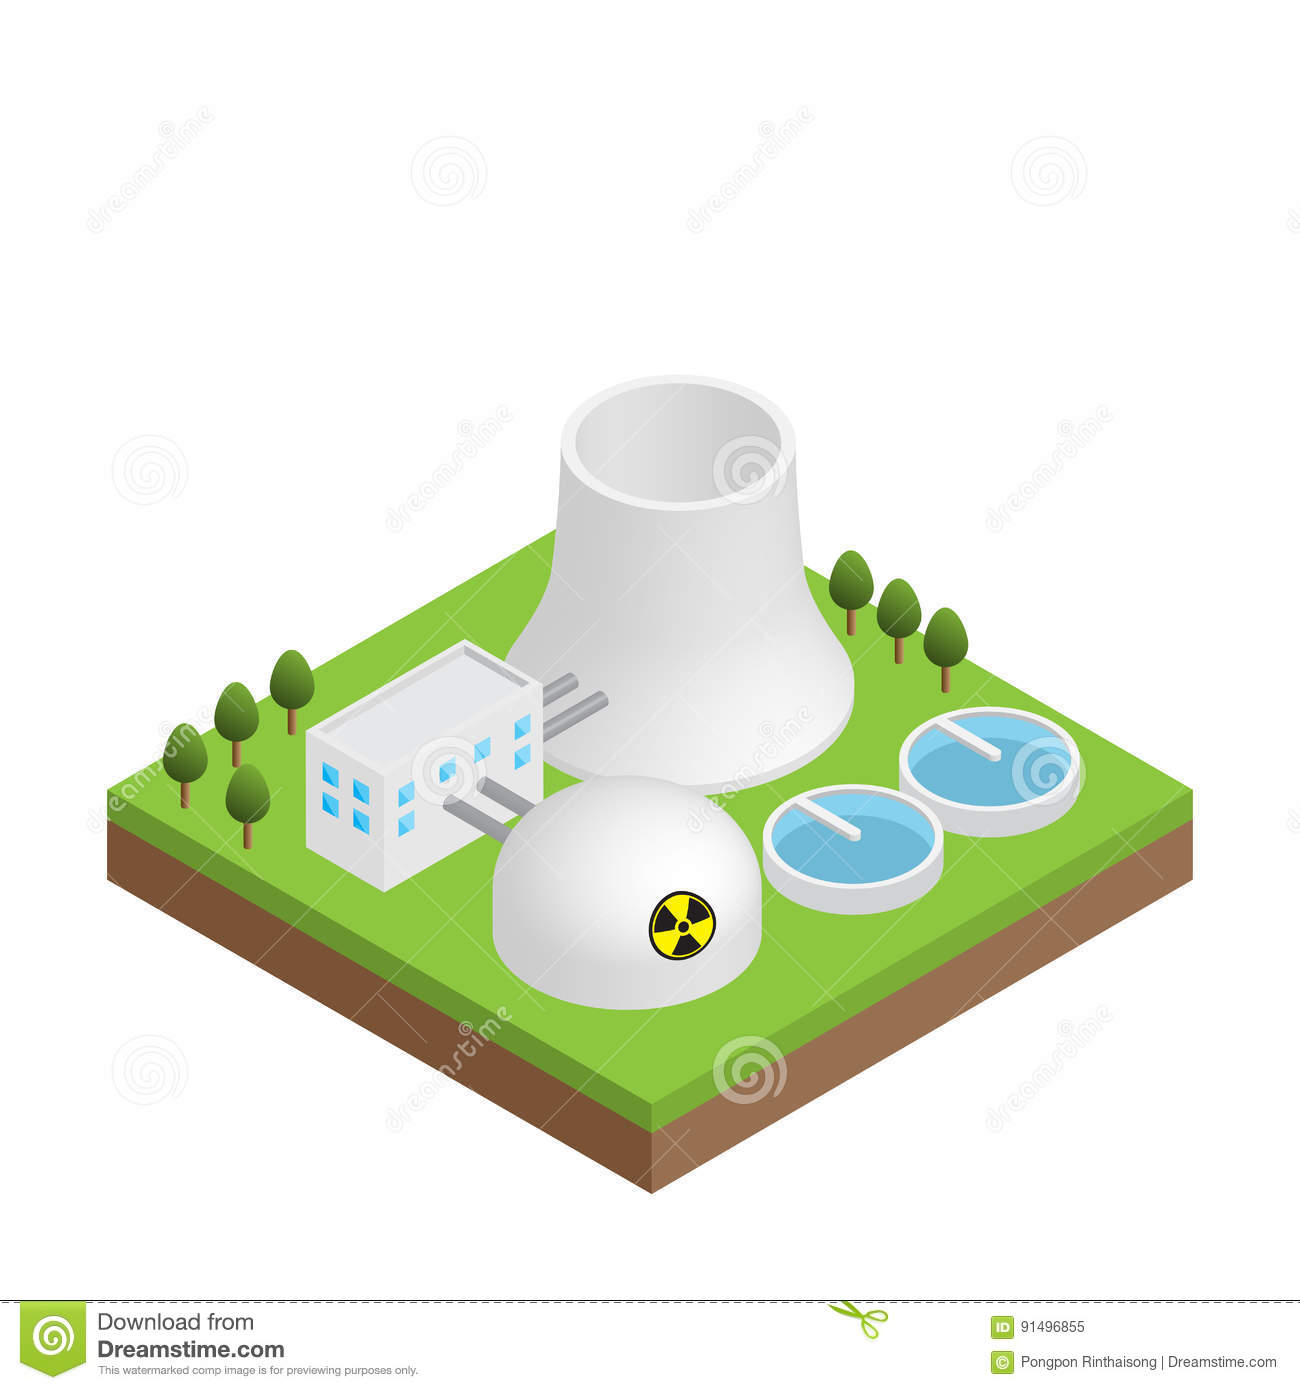 Nuclear Power Plant Simple Diagram Wiring Schematic Isometric Stock Vector Illustration Of Basic